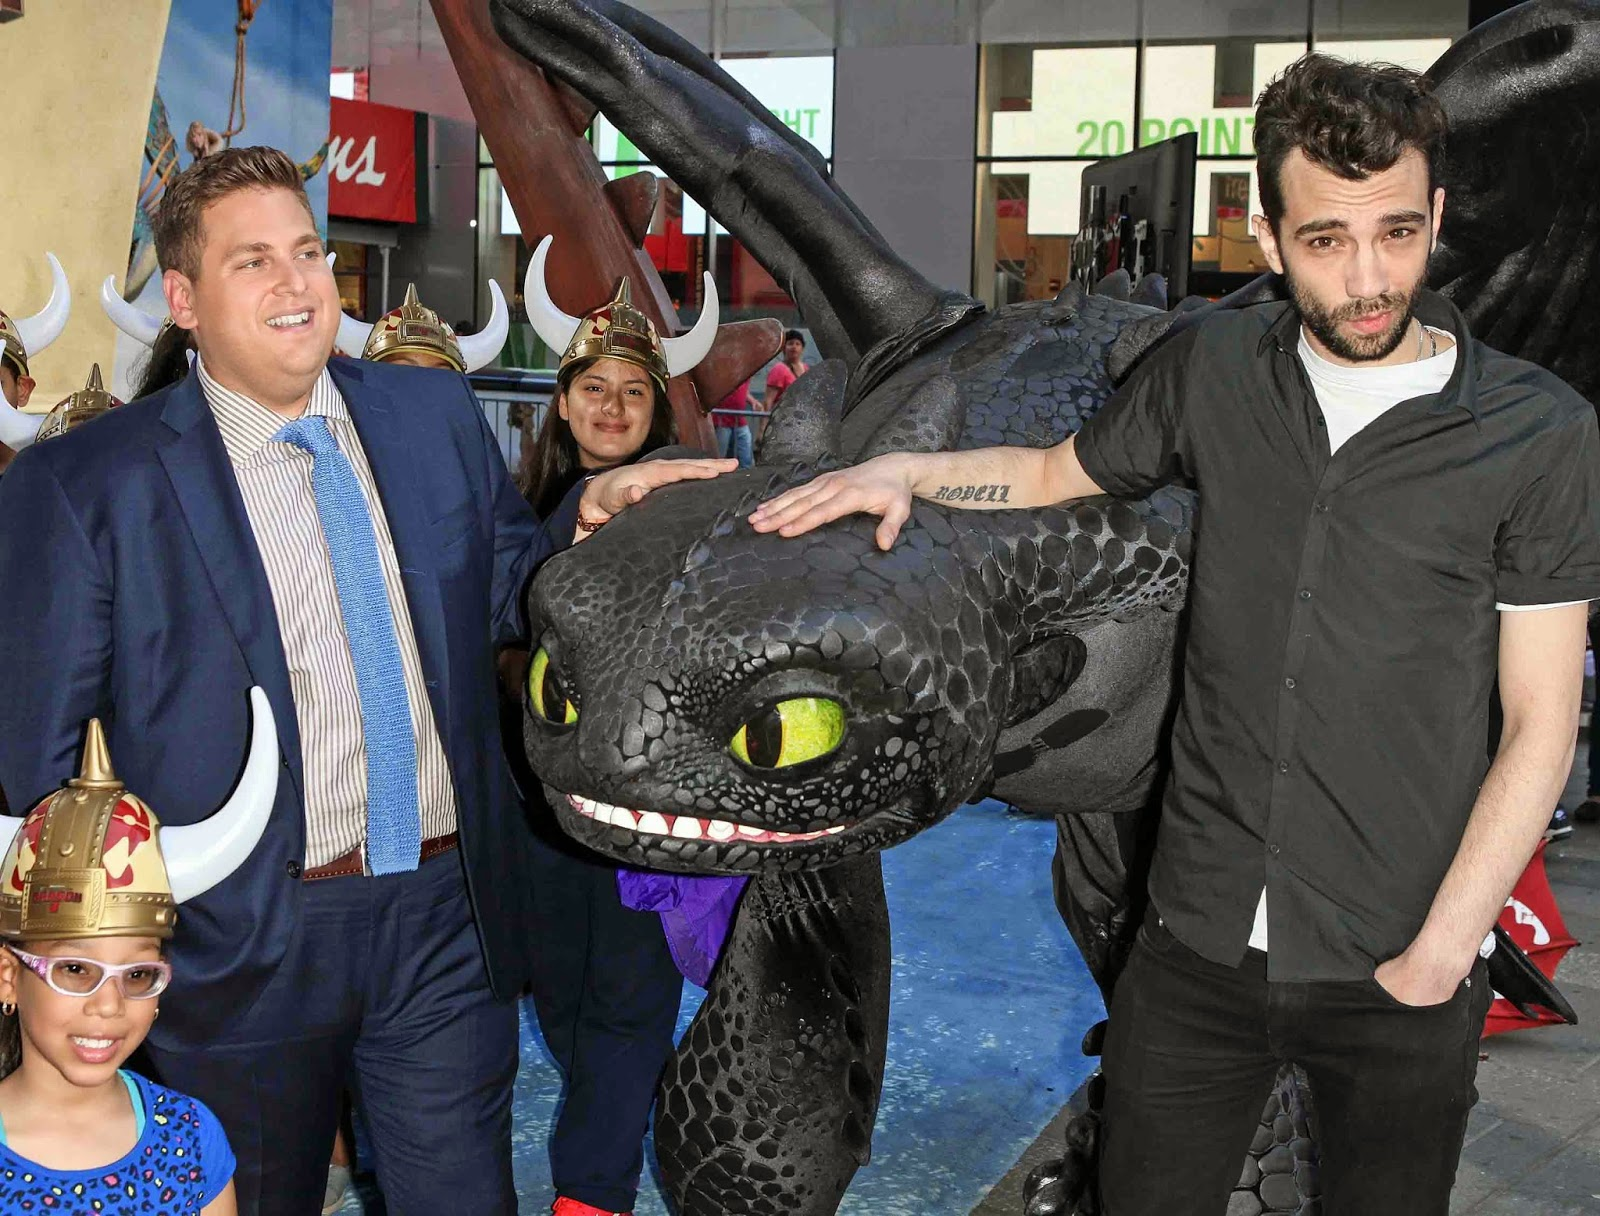 Times square gossip how to train your dragon 2 in times square jonah hill and jay baruchel ccuart Gallery